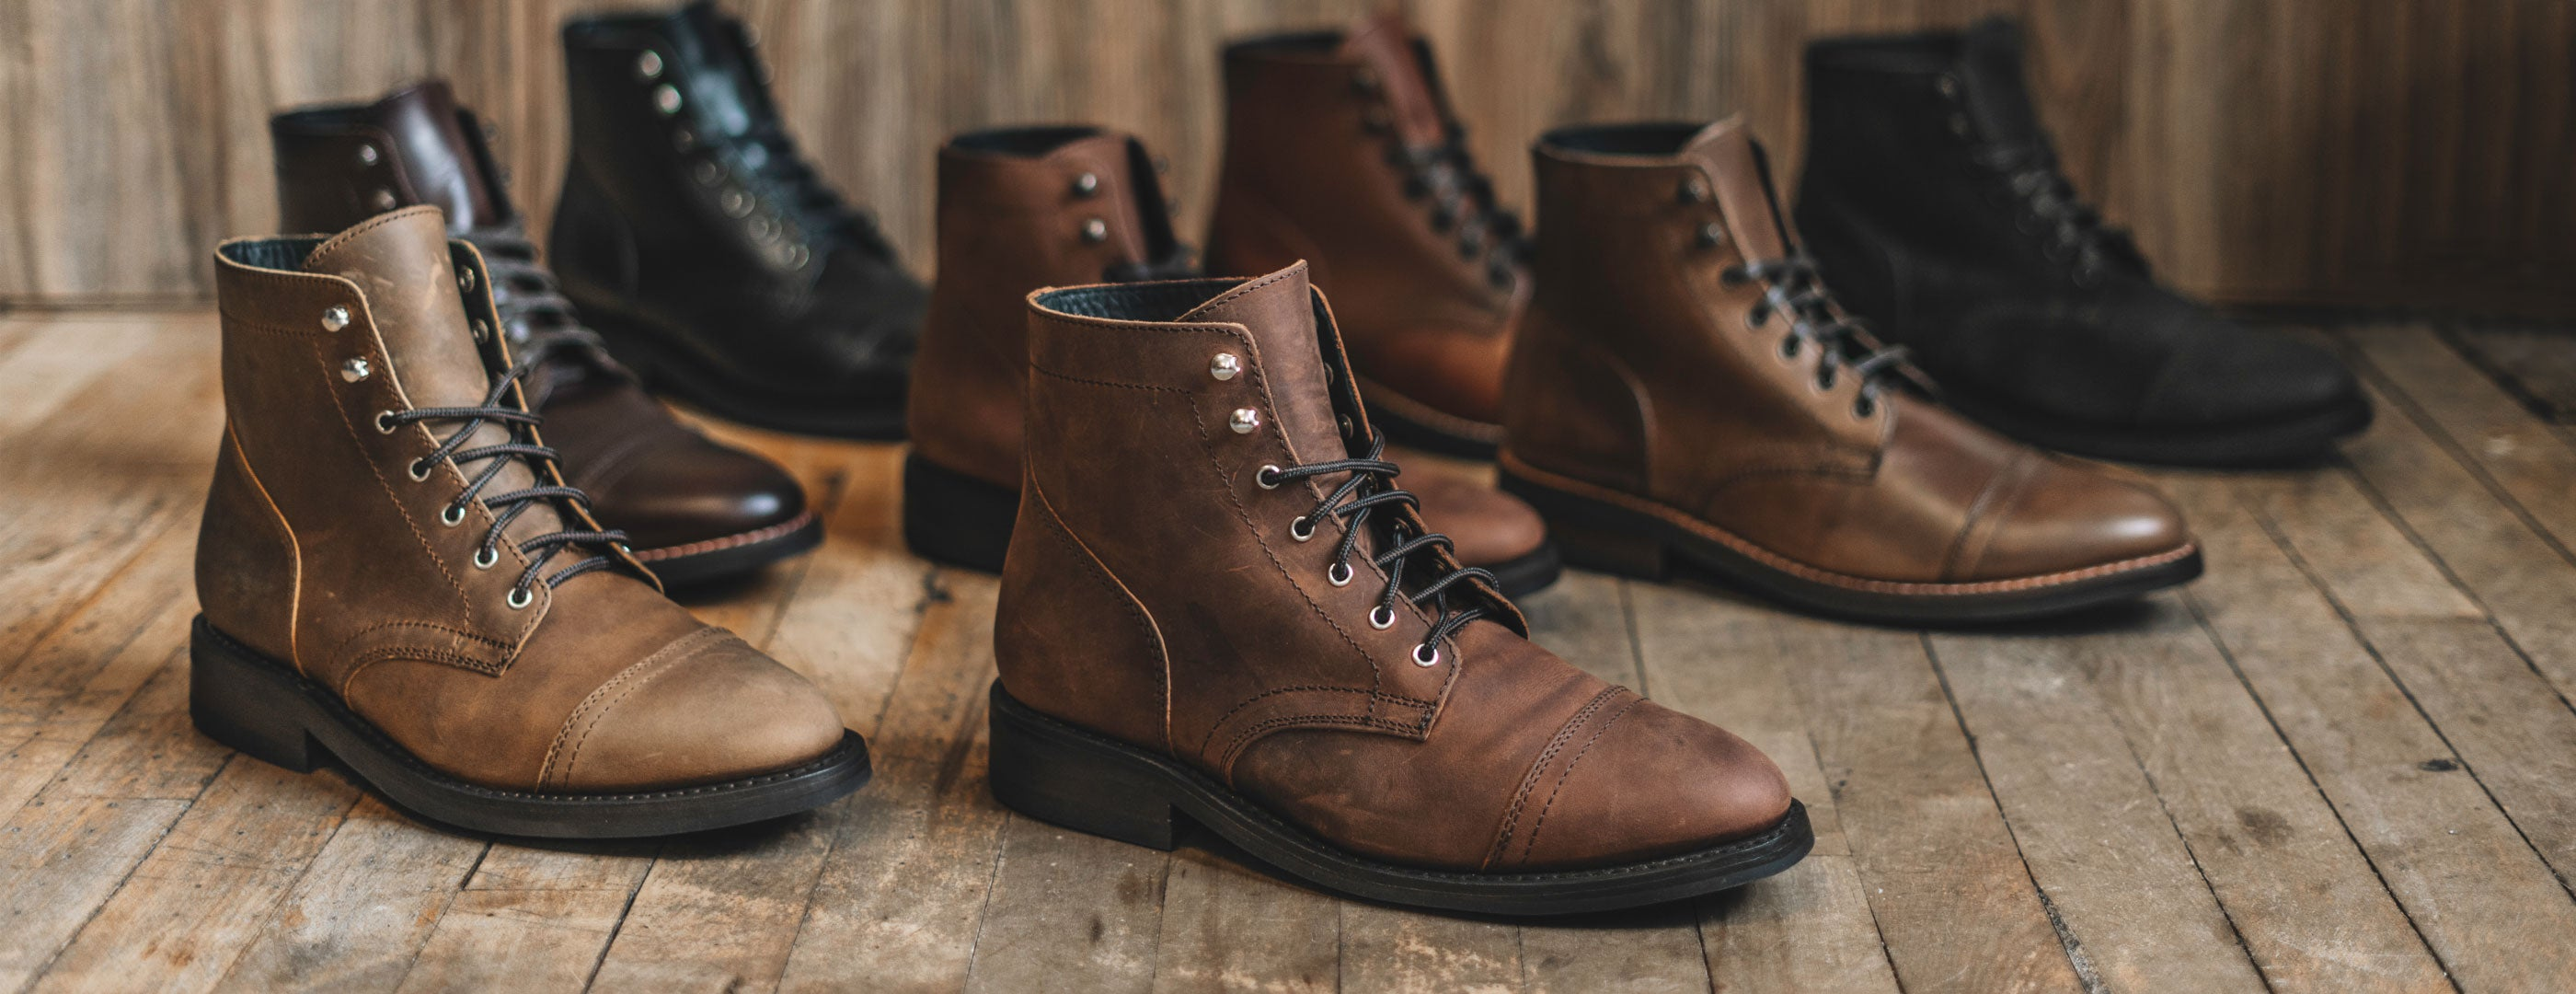 The Best Men's Boots of 2020 - Thursday Boot Company